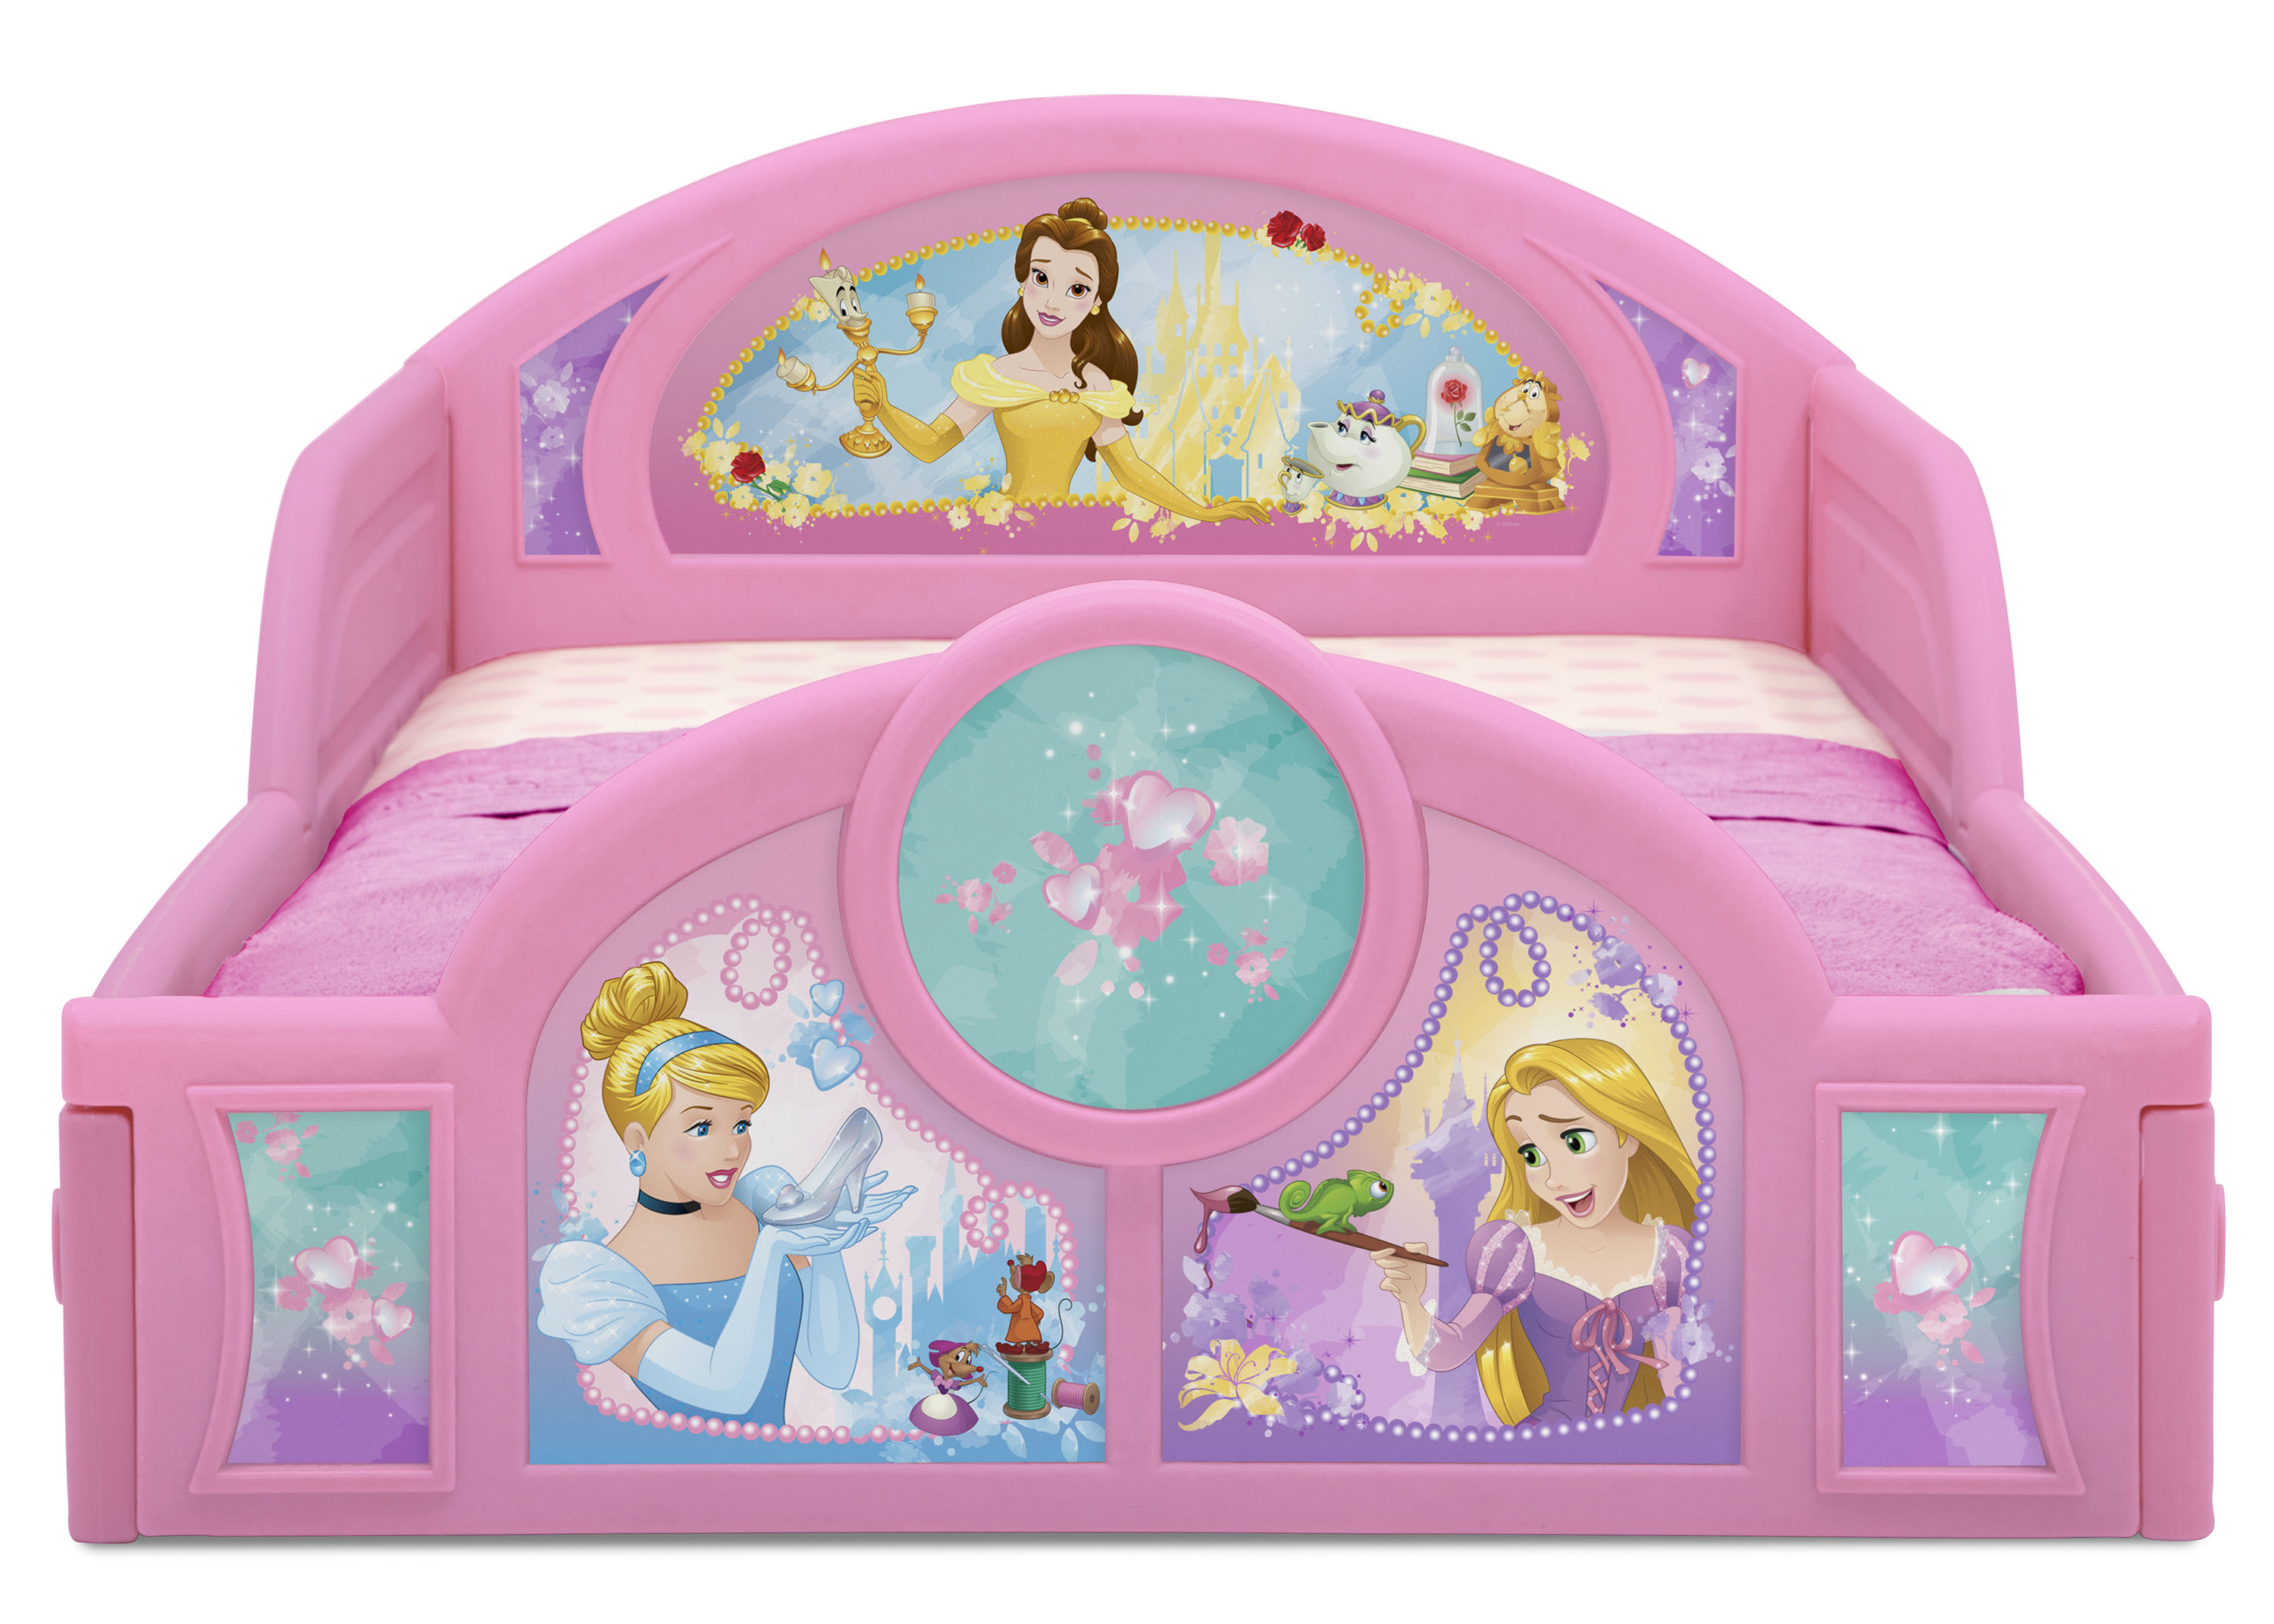 Disney Princess Plastic Sleep And Play Toddler Bed By Delta Children Walmart Com Walmart Com